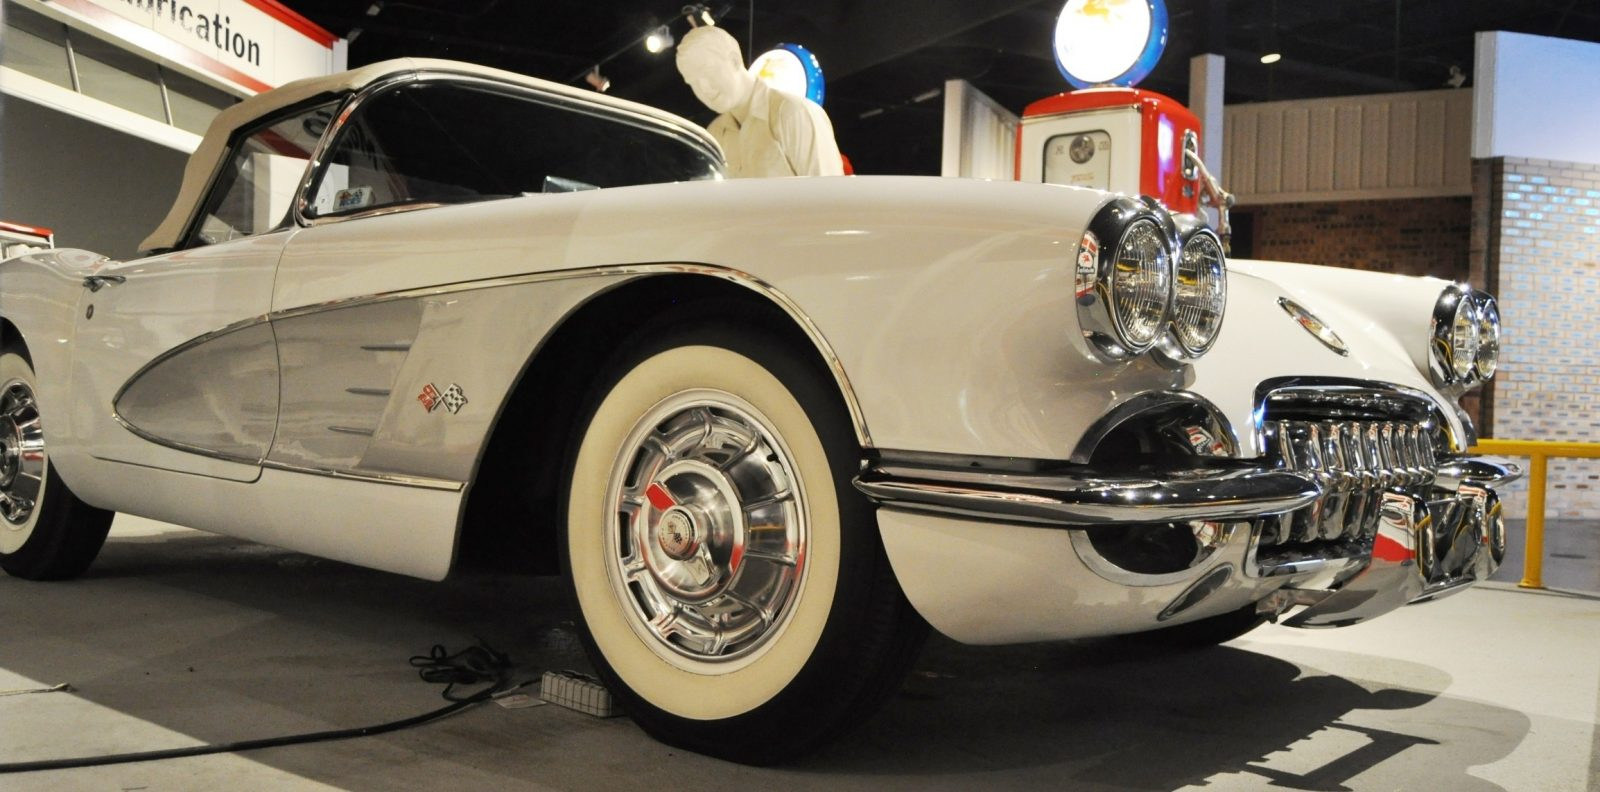 Corvette Museum Photo Tour -- The C1, C2 and C3 Generations in 83 High-Res Photos 56